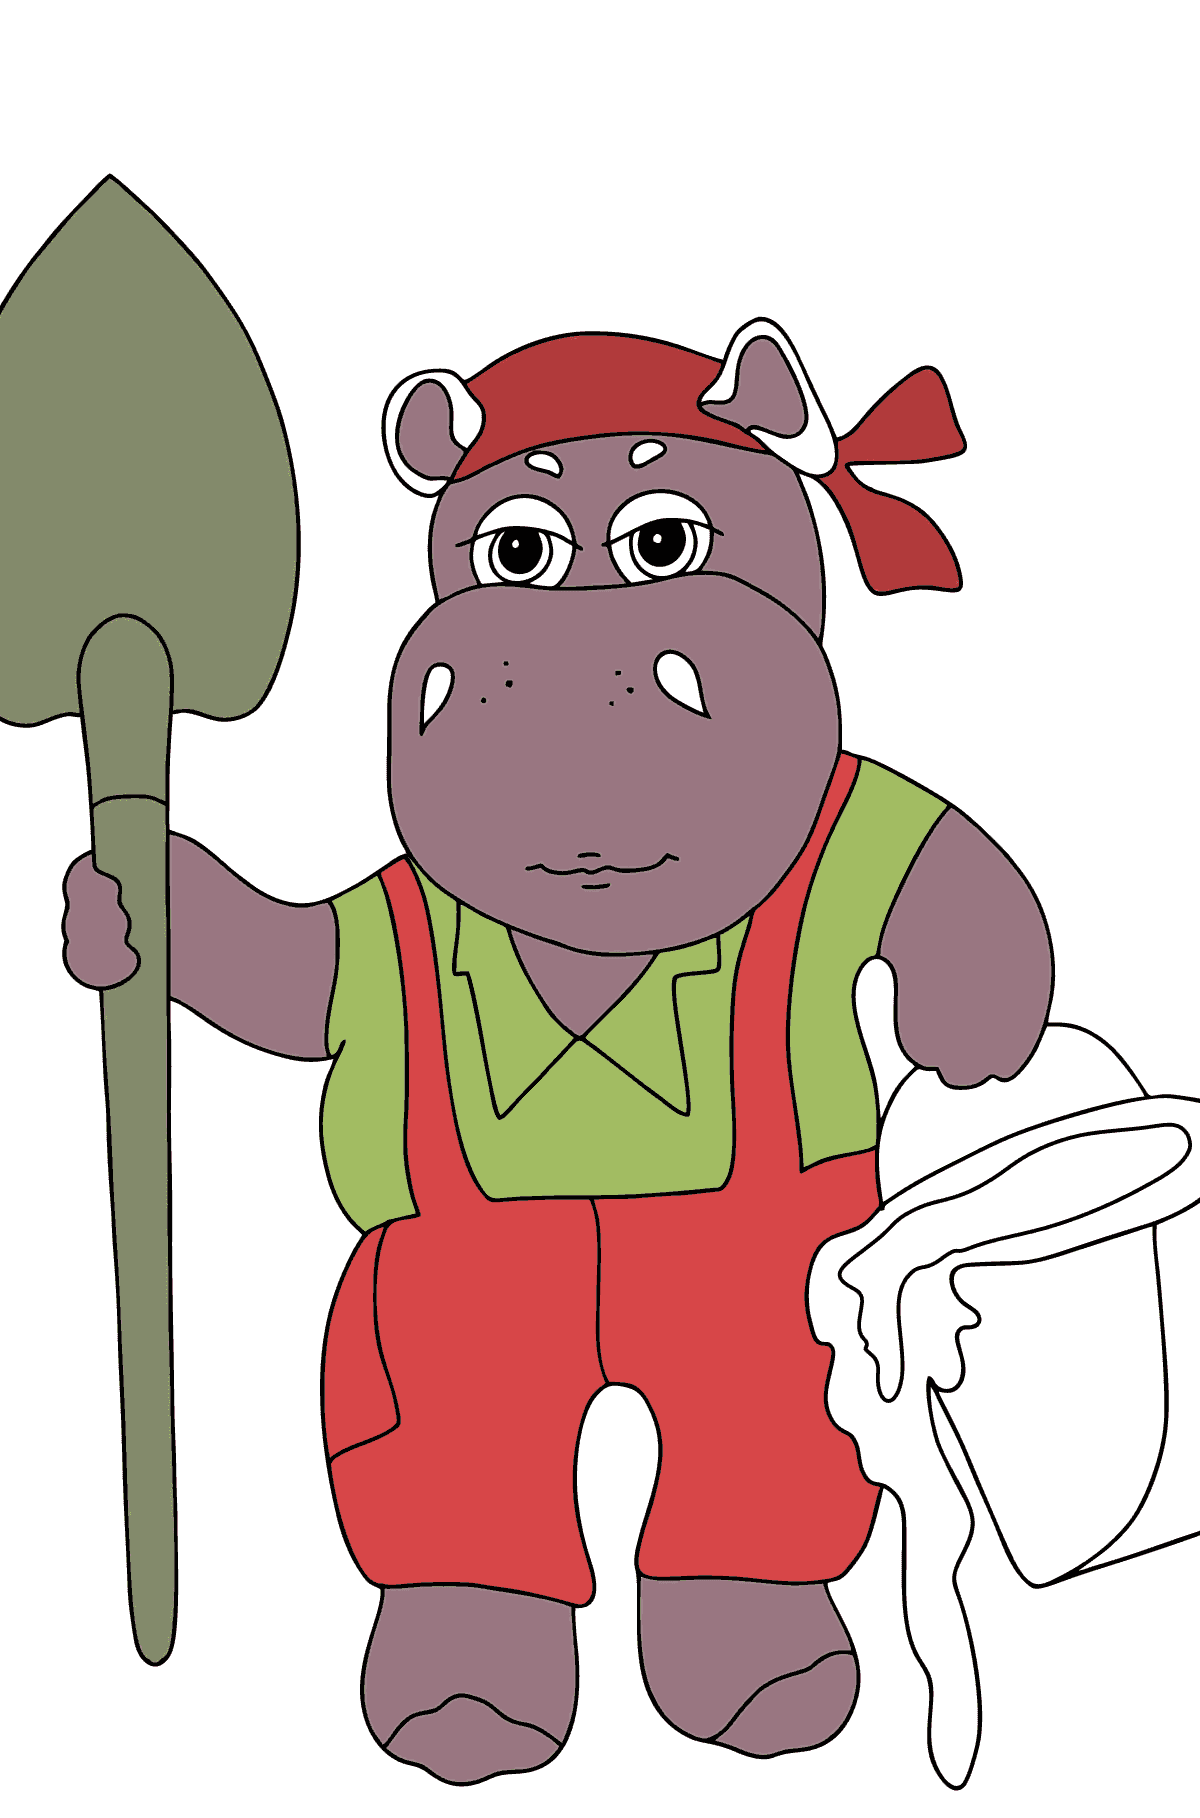 Coloring Page - A Hippo is Digging in the Ground for Kids